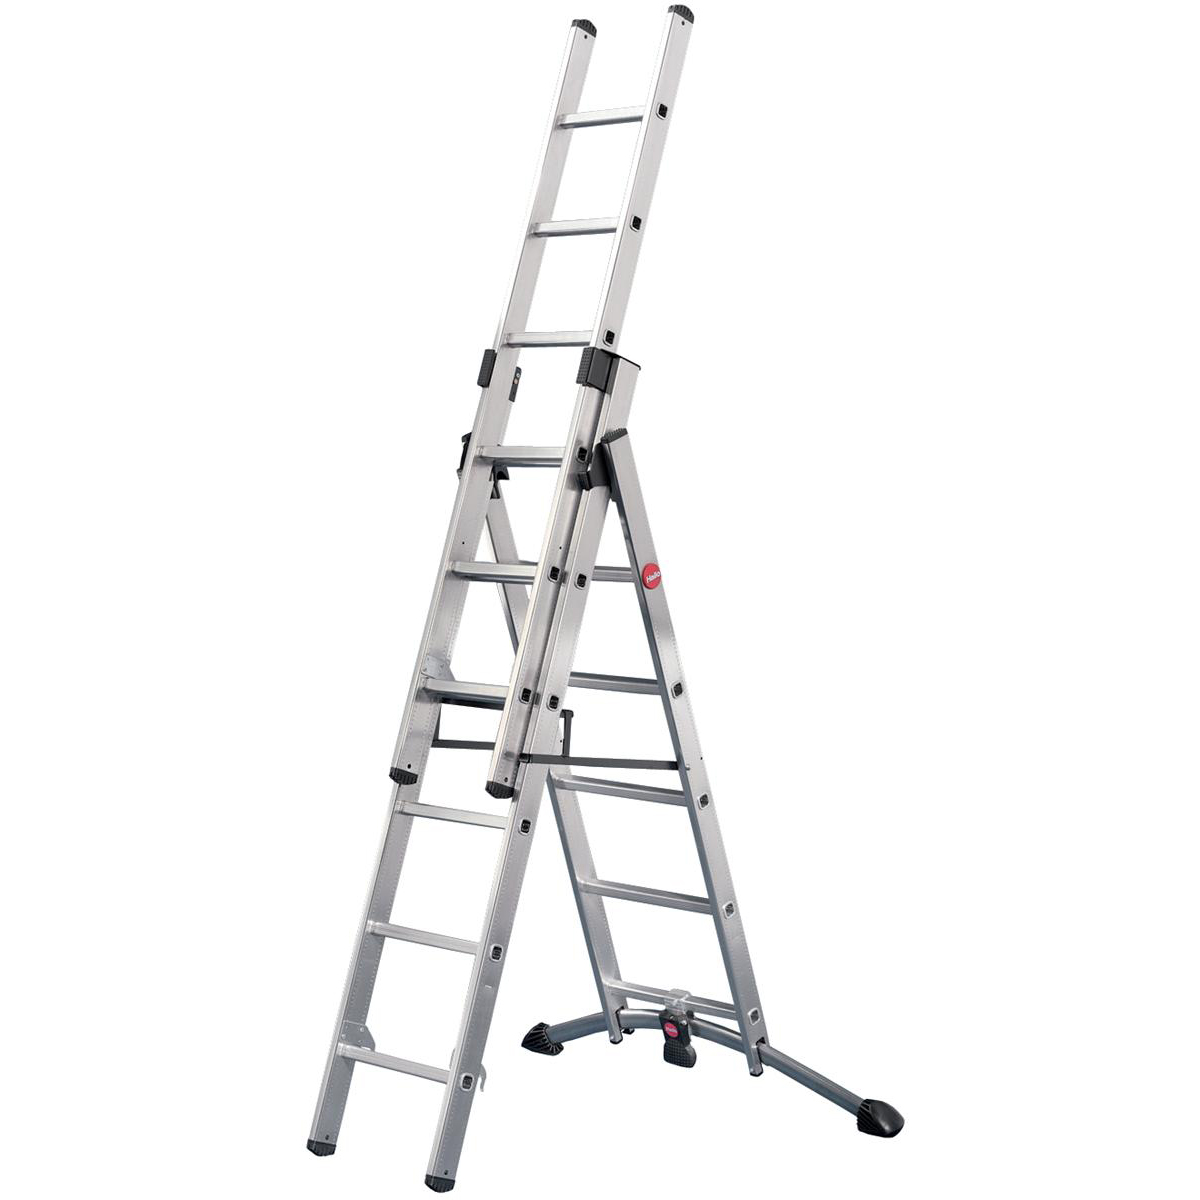 Ladders Combi Ladder 3 Section Capacity 150kg Rungs 2x6 and 1x5 for H4.8m 15.5kg Aluminium